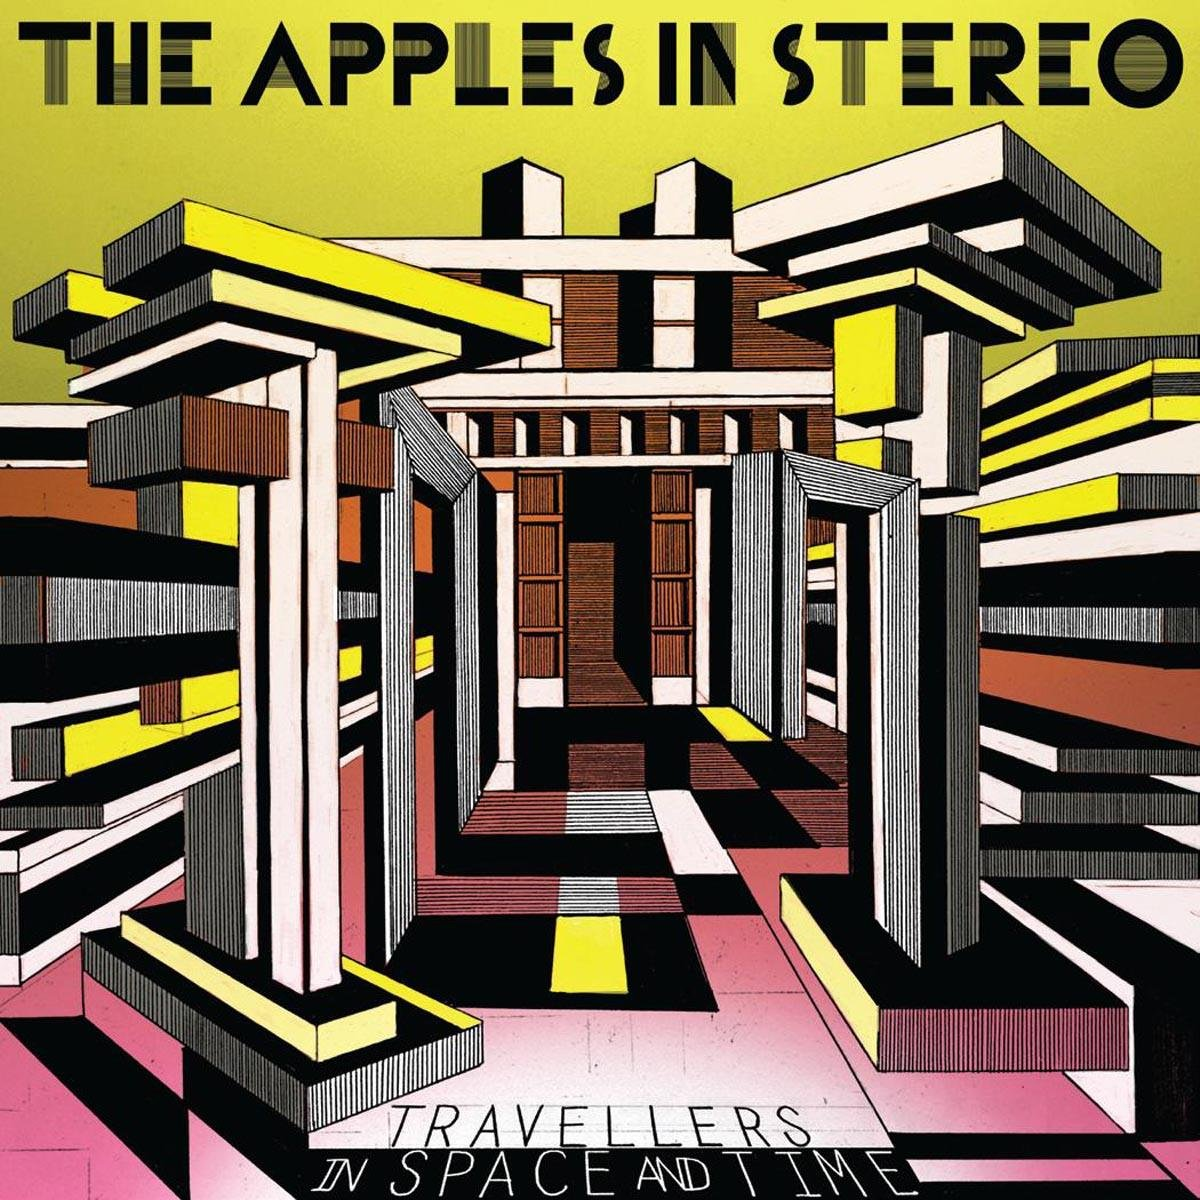 The Apples in Stereo, Travellers in Space and Time